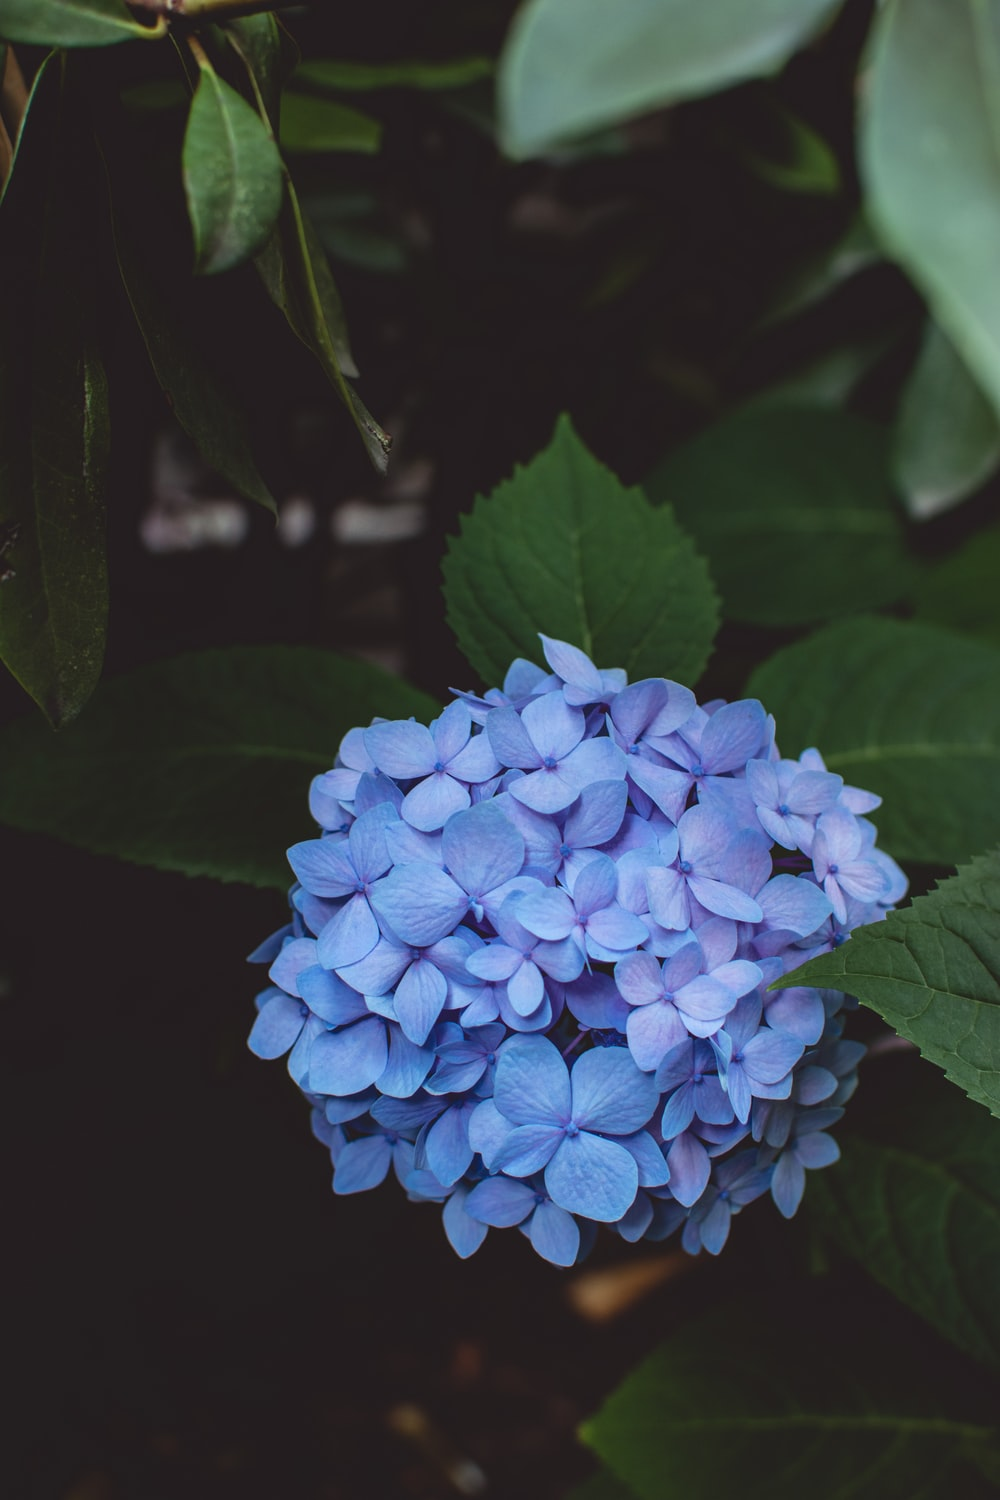 Hydrangea Pictures Hq Download Free Images On Unsplash